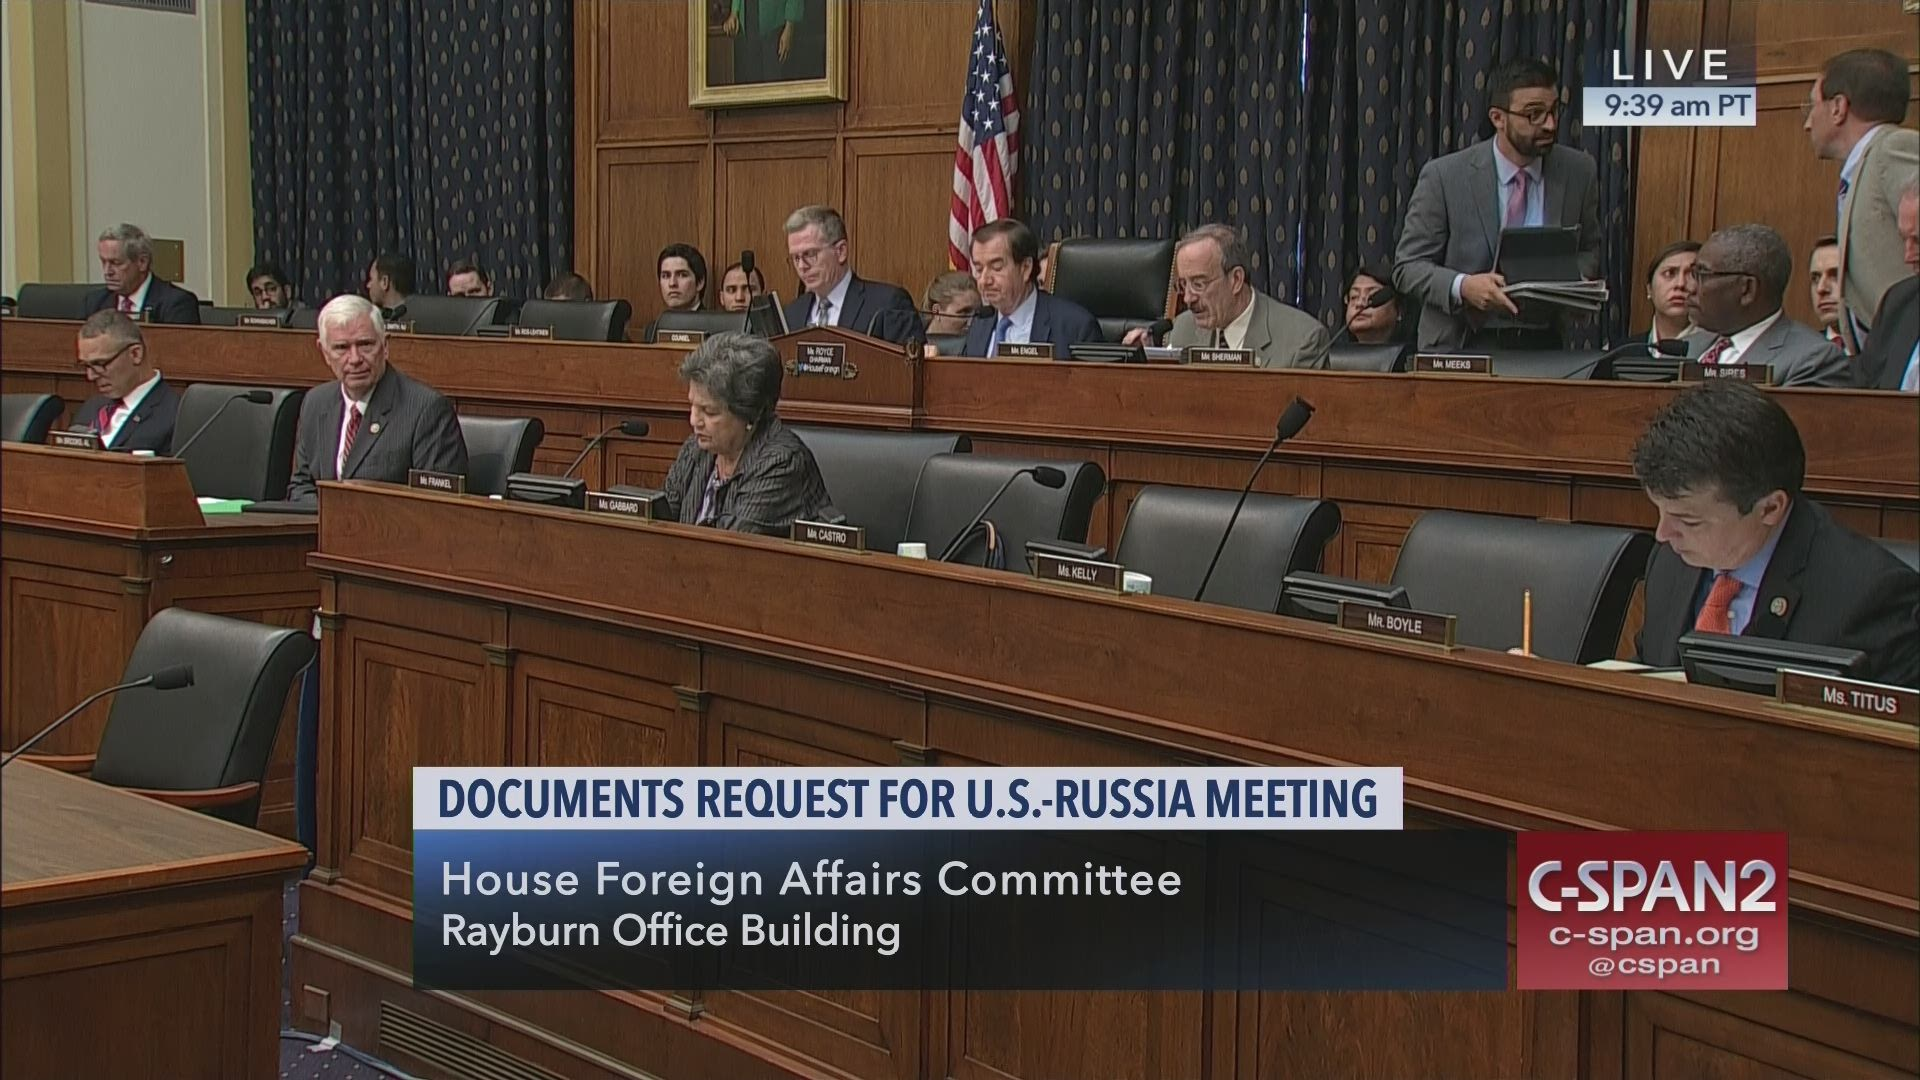 Image result for IMAGES OF HOUSE FOREIGN AFFAIRS COMMITTEE